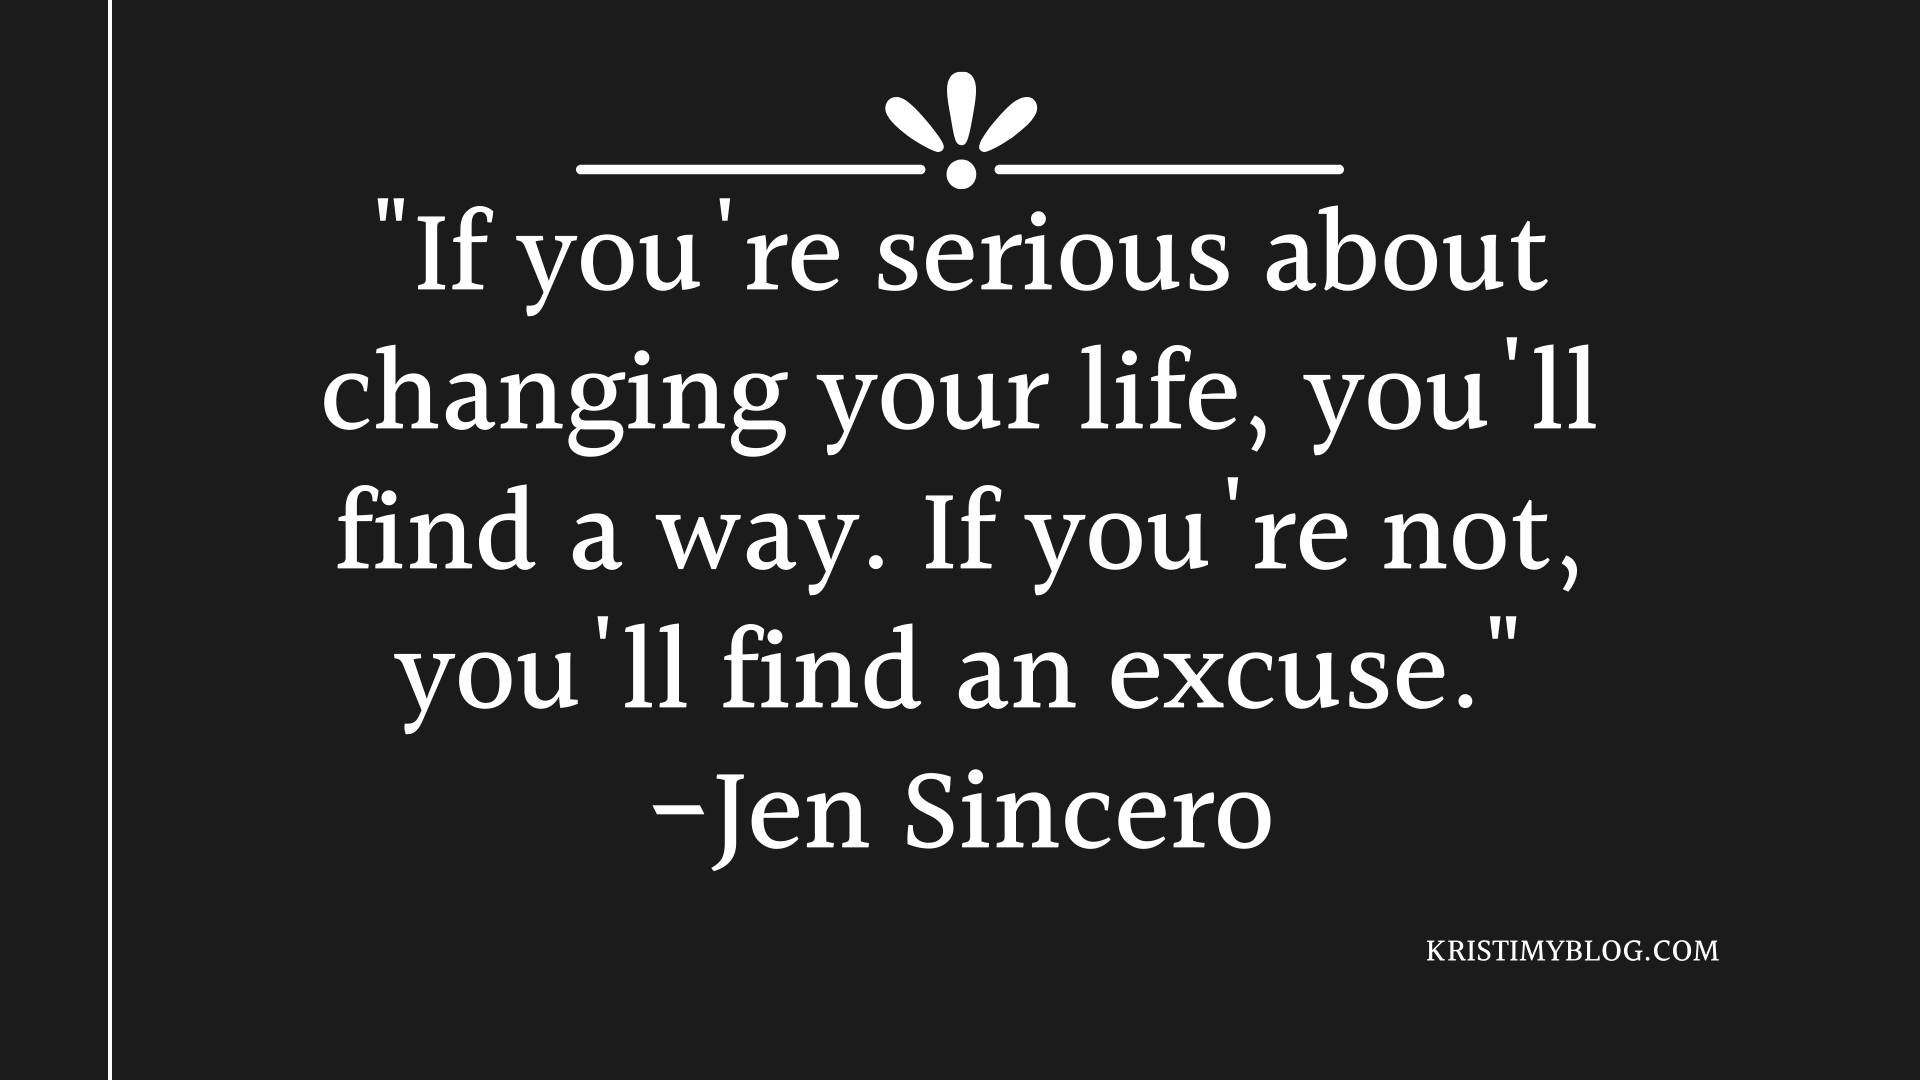 """If you're serious about changing your life, you'll find a way. If you're not, you'll find an excuse."" -Jen Sincero"